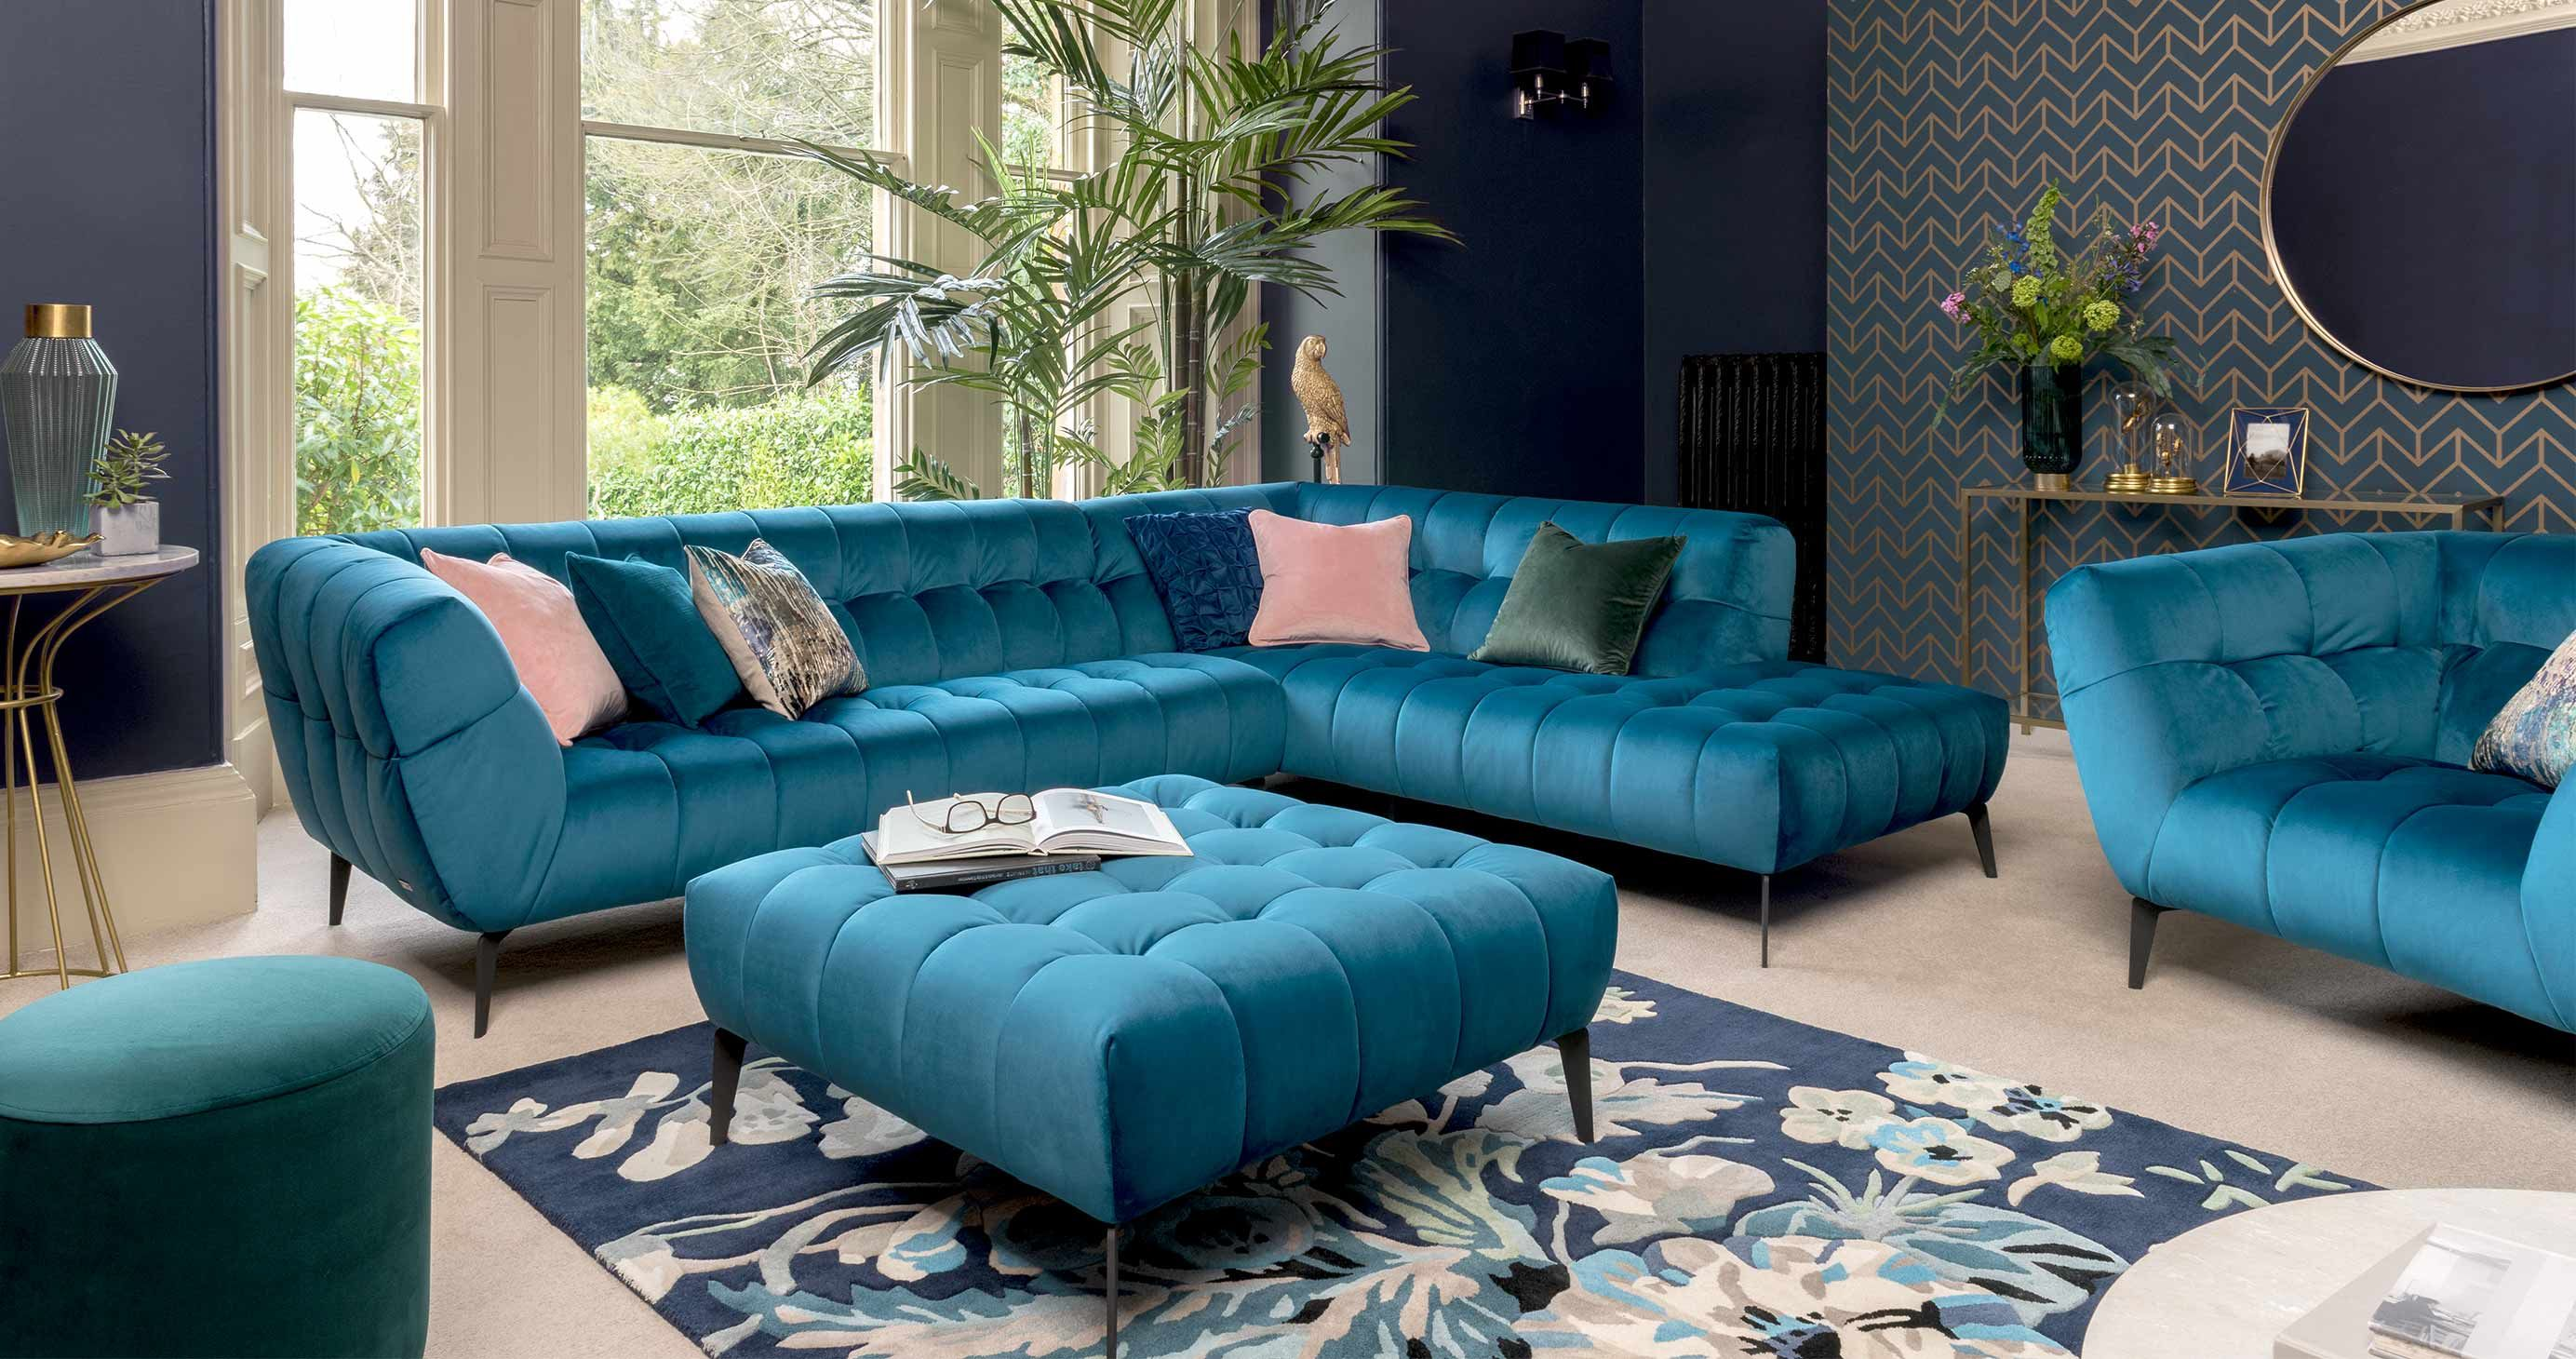 Silvano corner sofa from Arighi Bianchi. As a top pick for